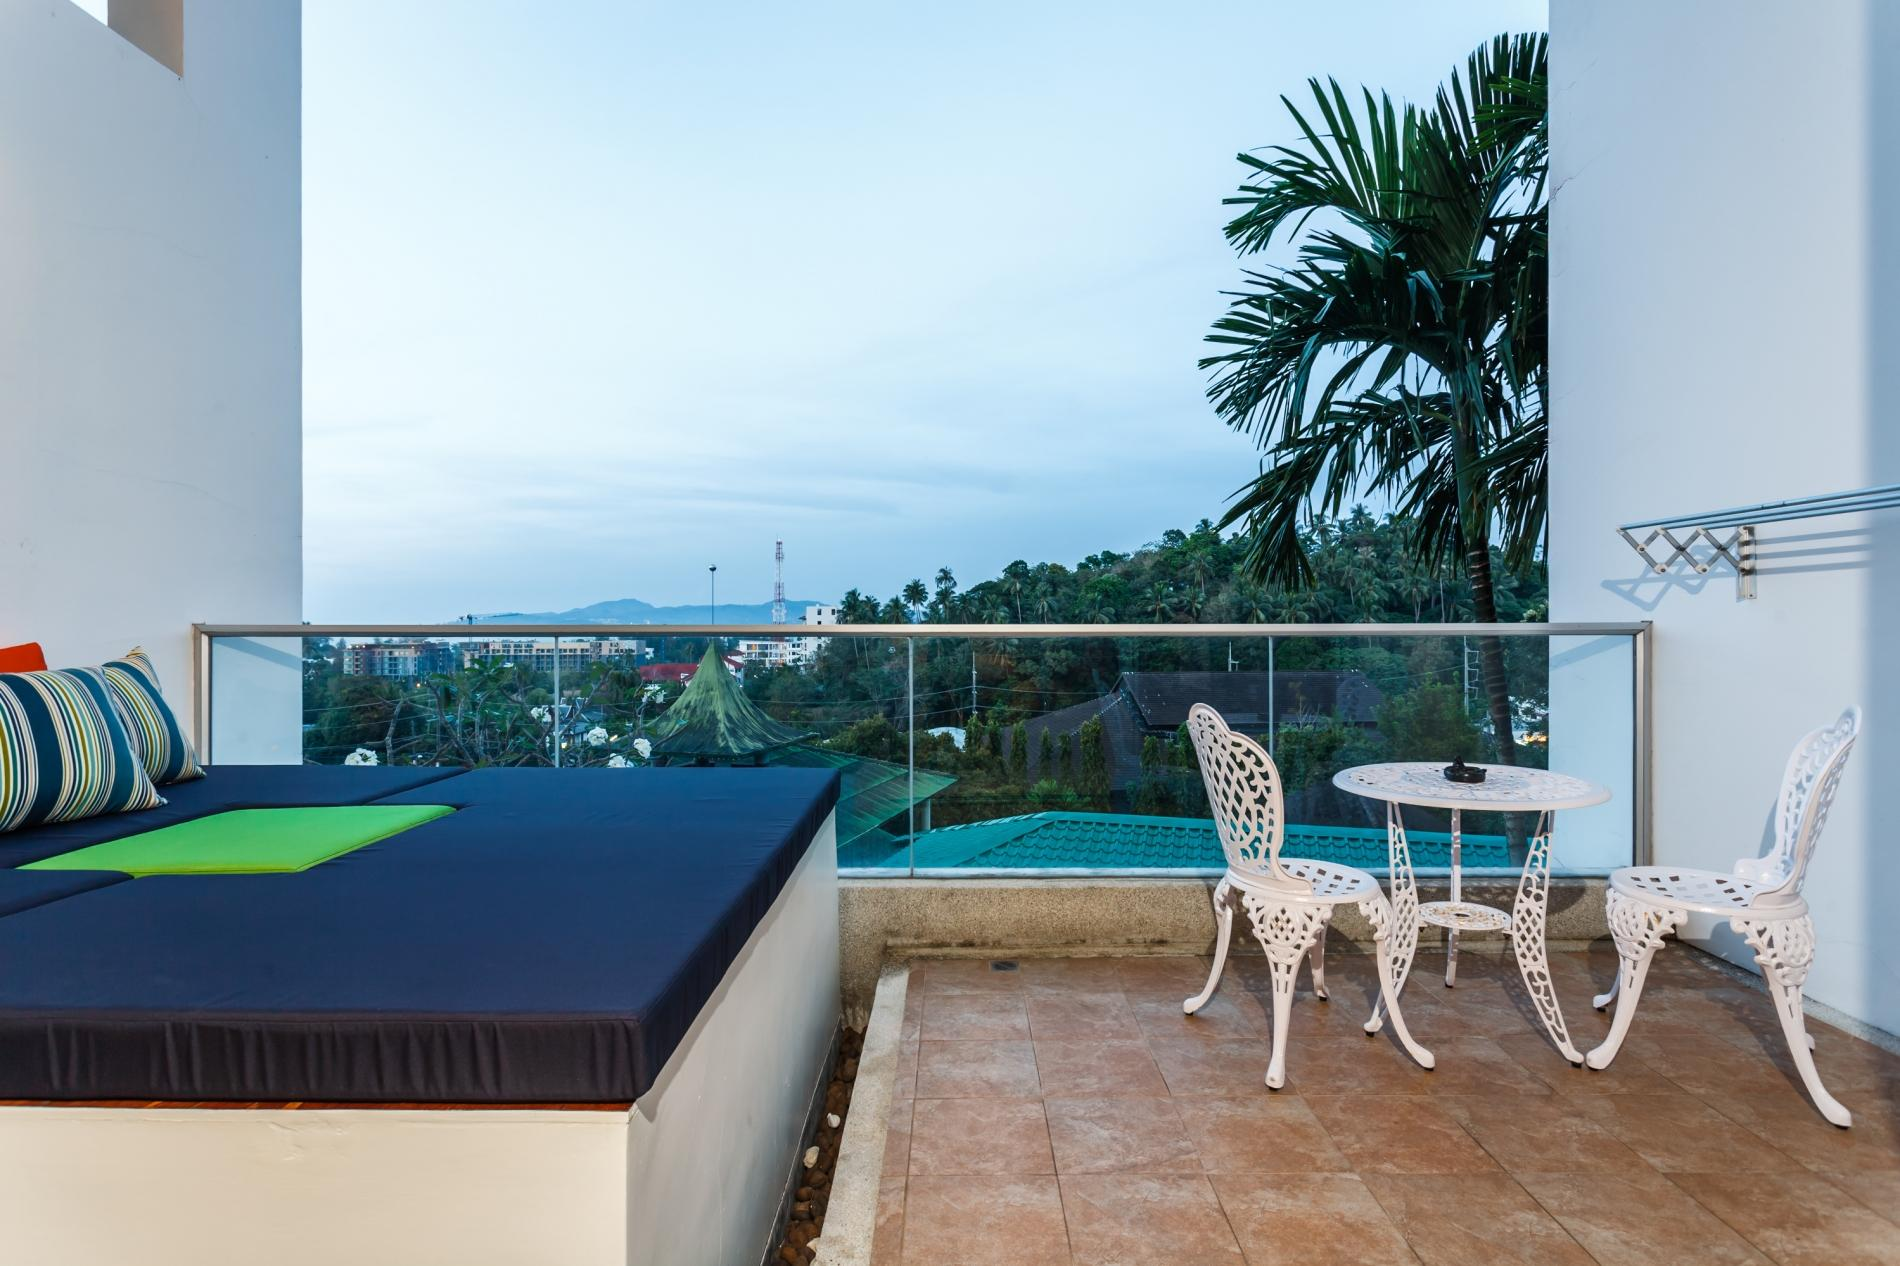 Apartment The Quarter 408 - Seaview Duplex in Surin with patio and shared pool photo 16835764